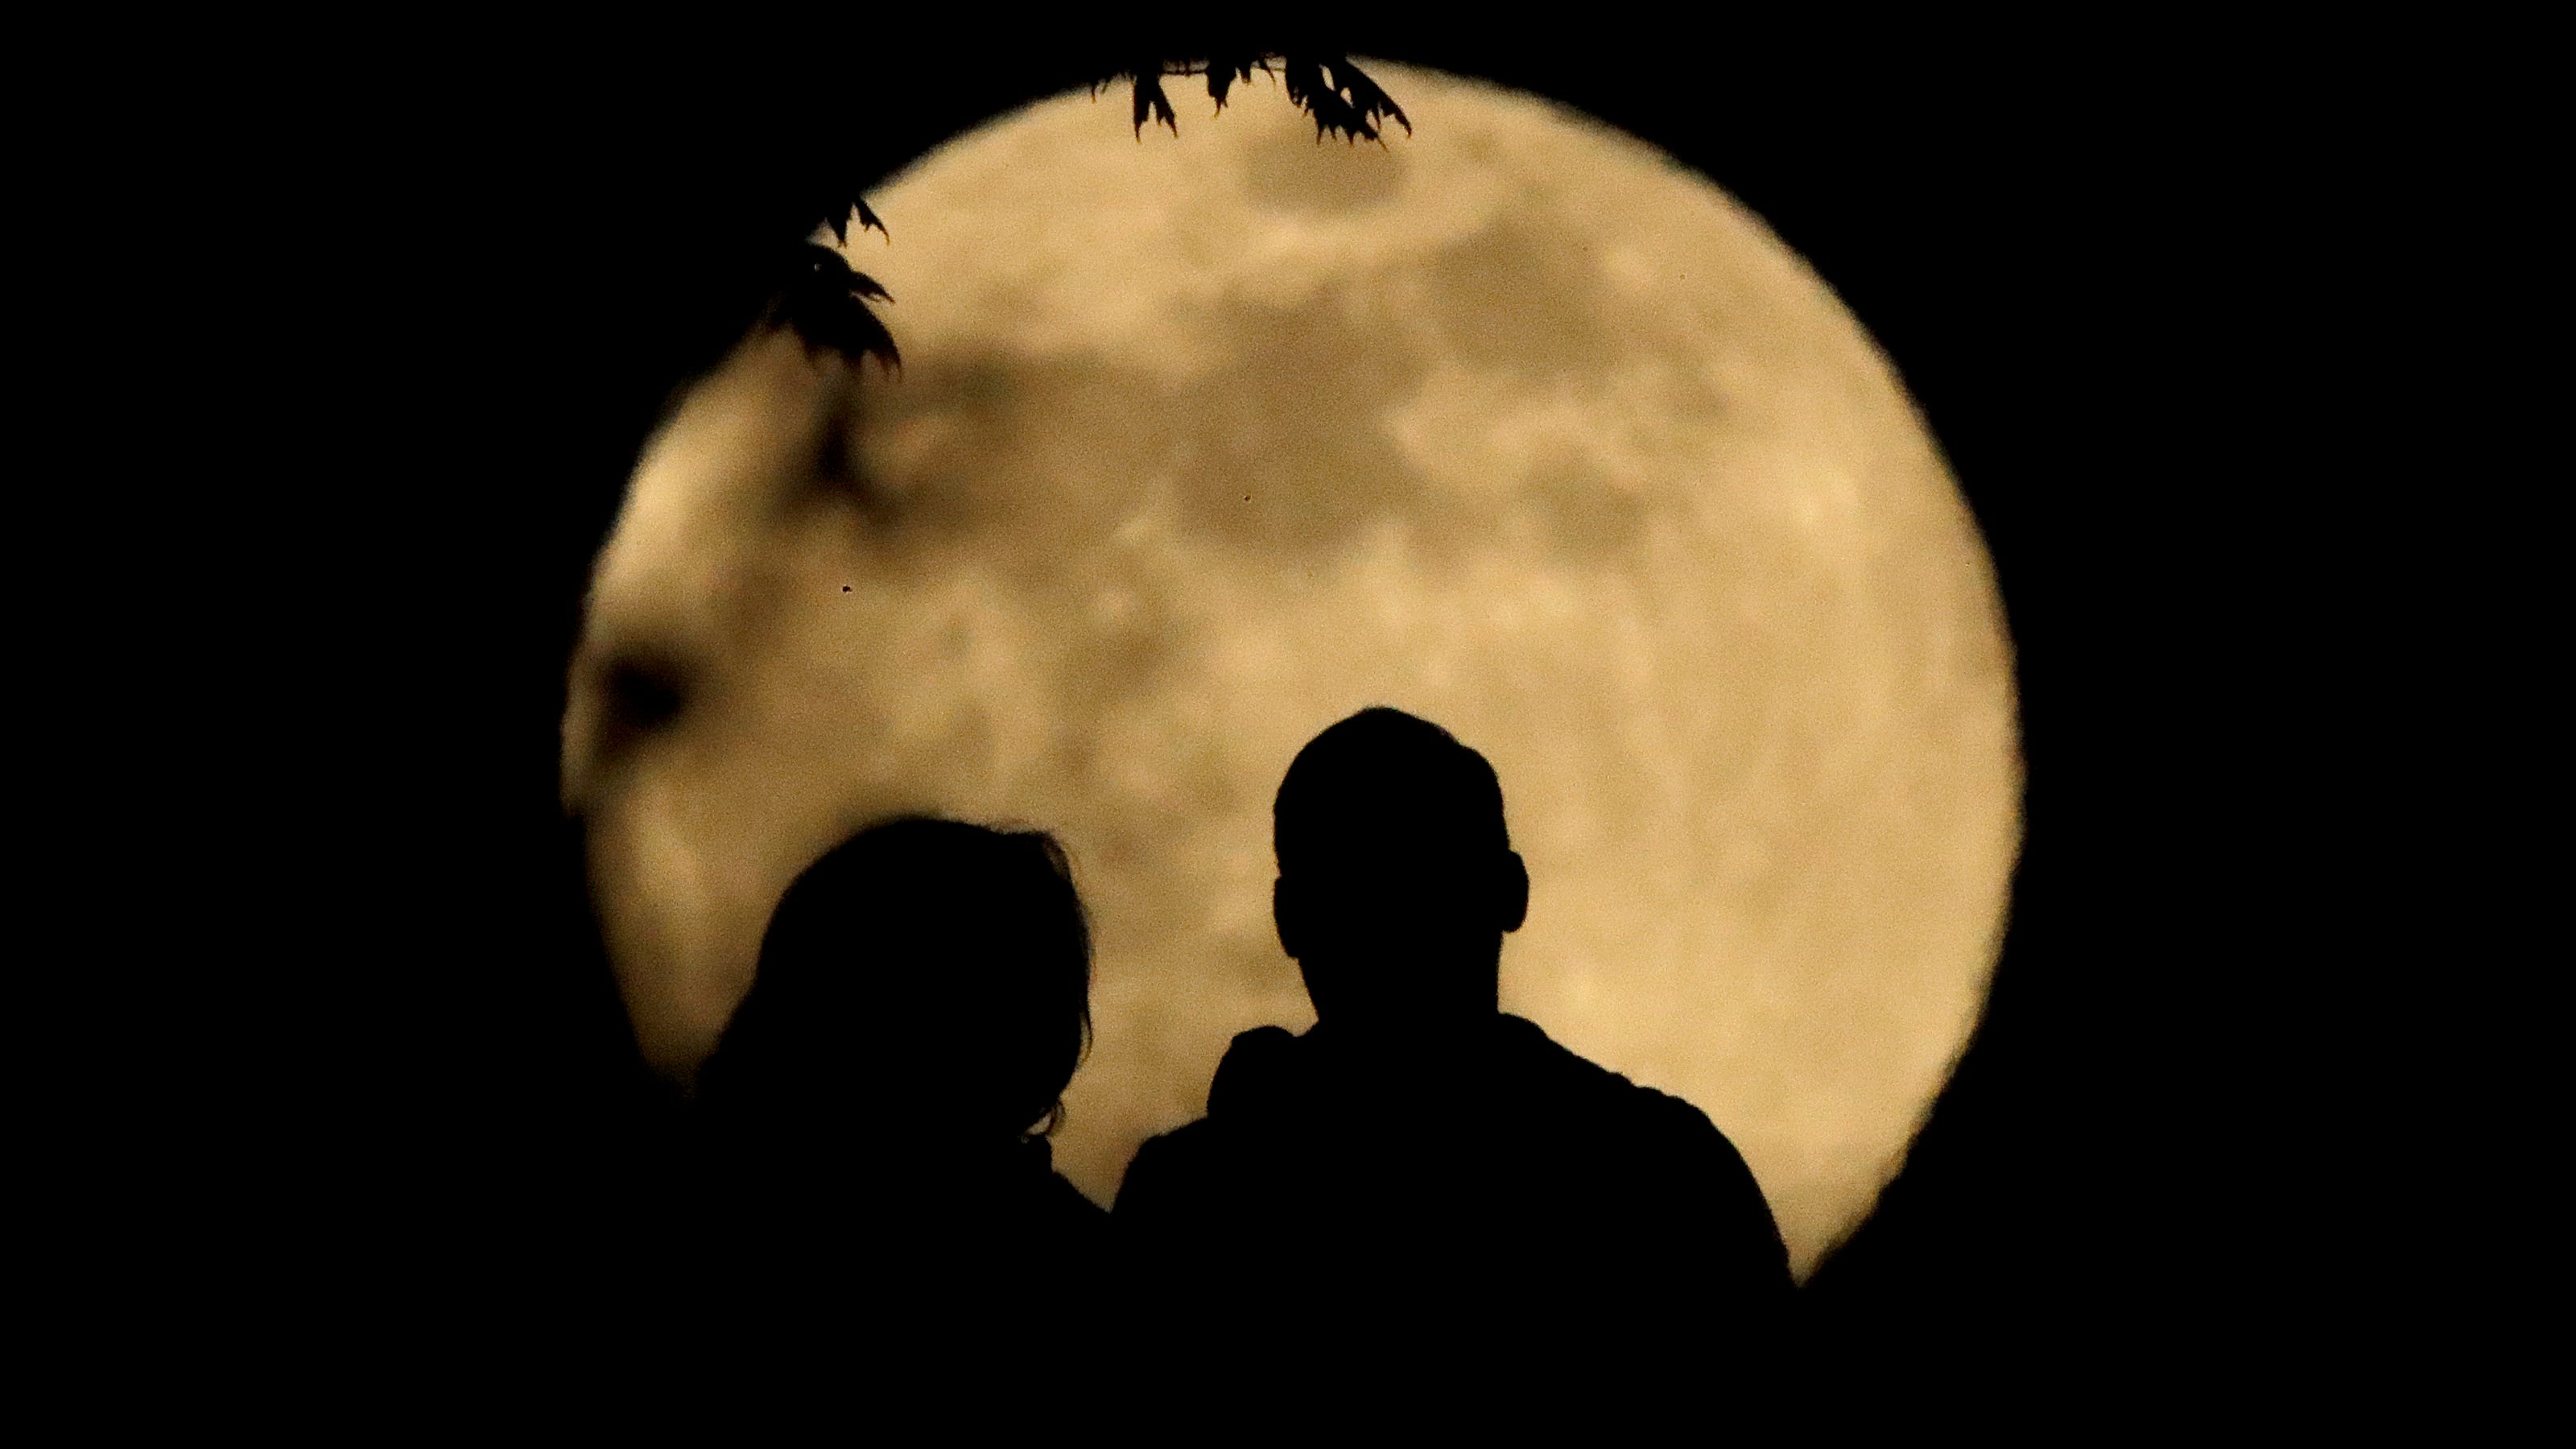 October to feature a rare Halloween 'blue moon'